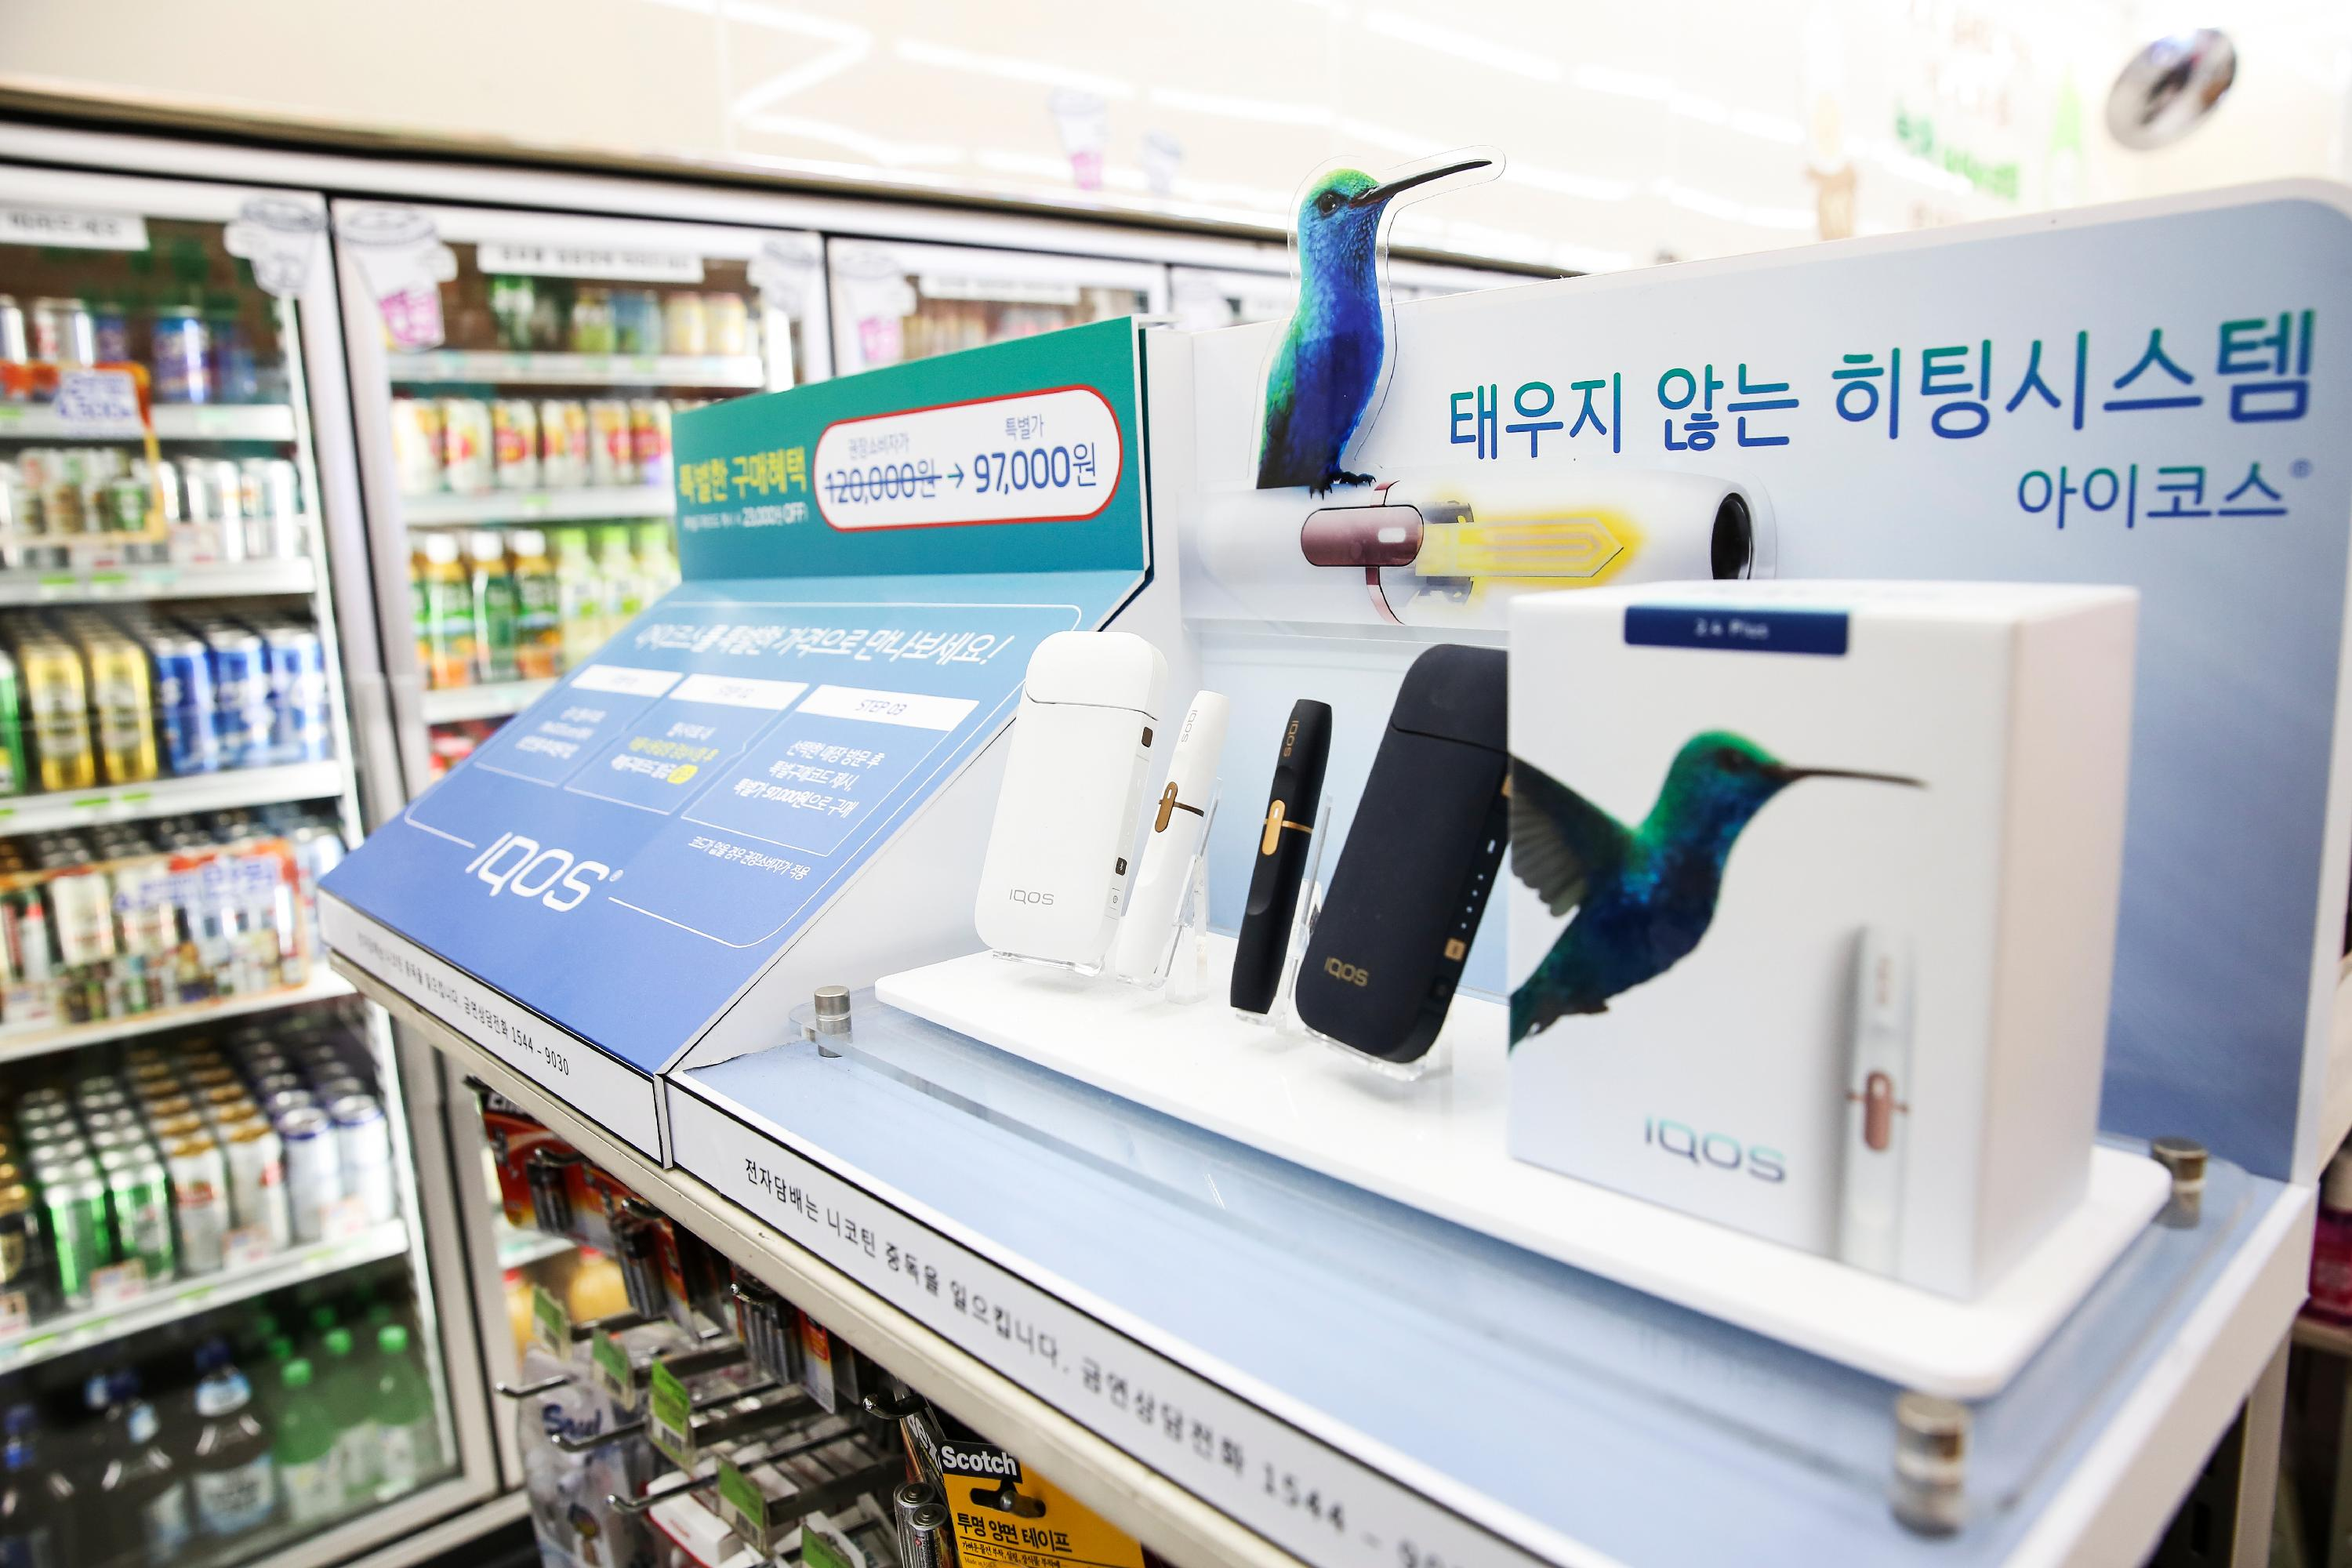 An IQOS display at a convenience store in Seoul, where the device launched in May.